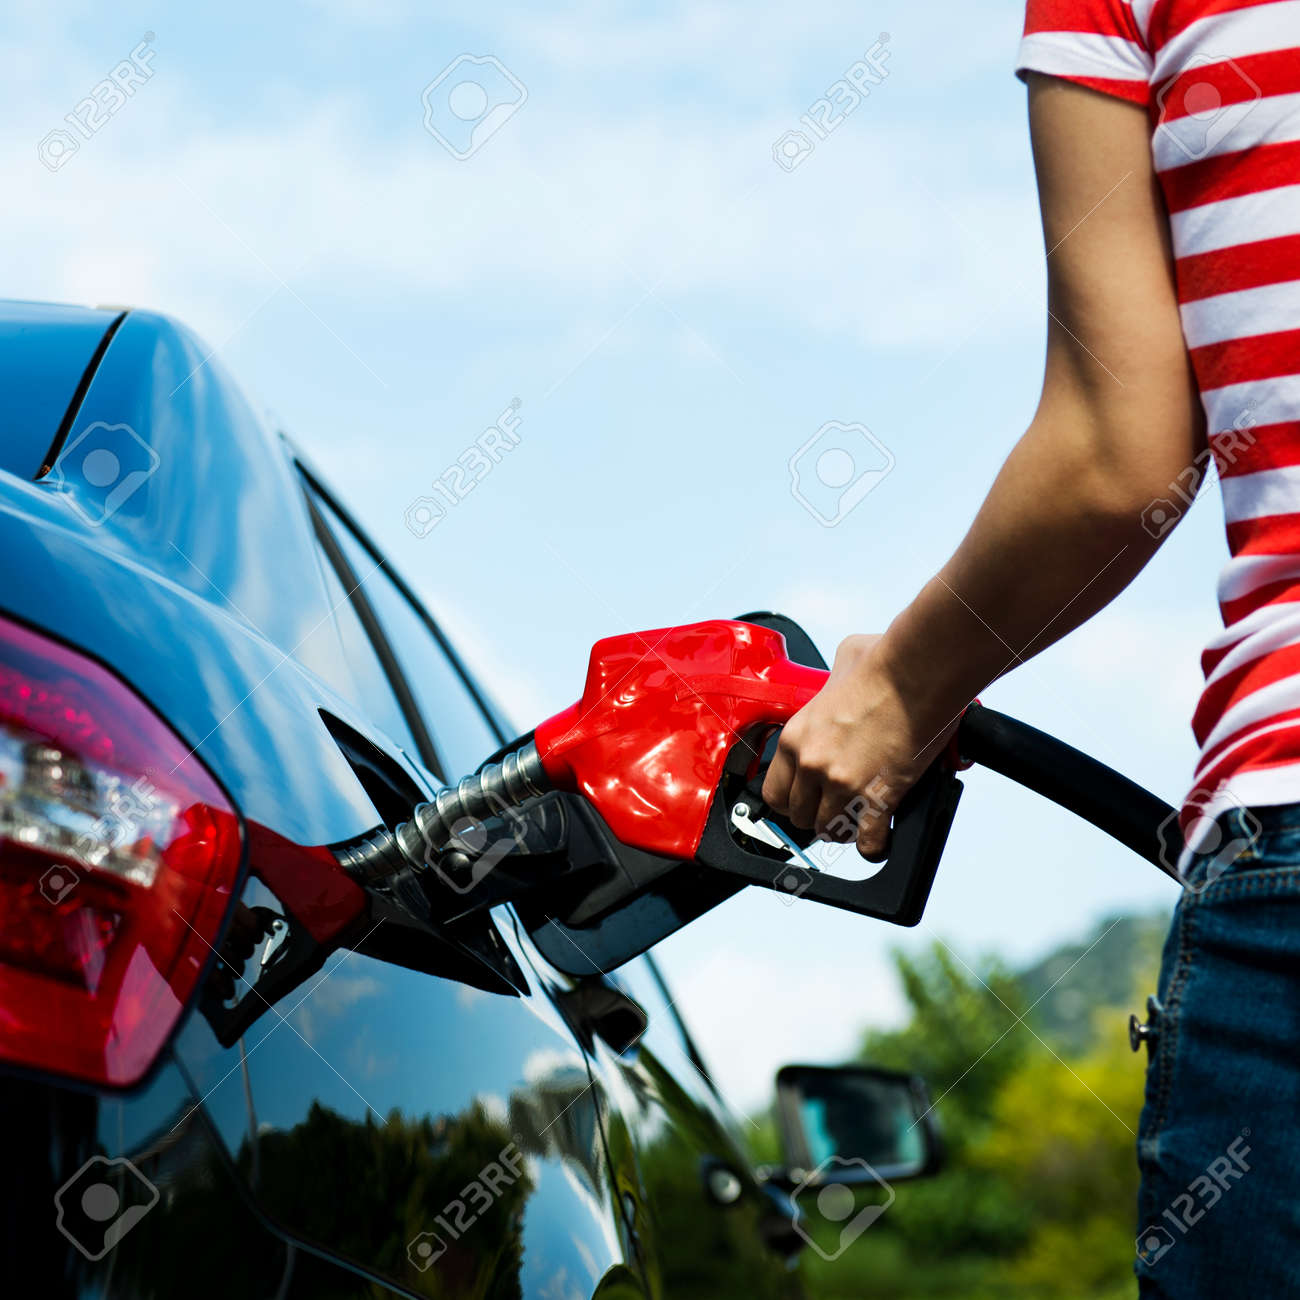 Hand refilling the car with fuel. Stock Photo - 33756945